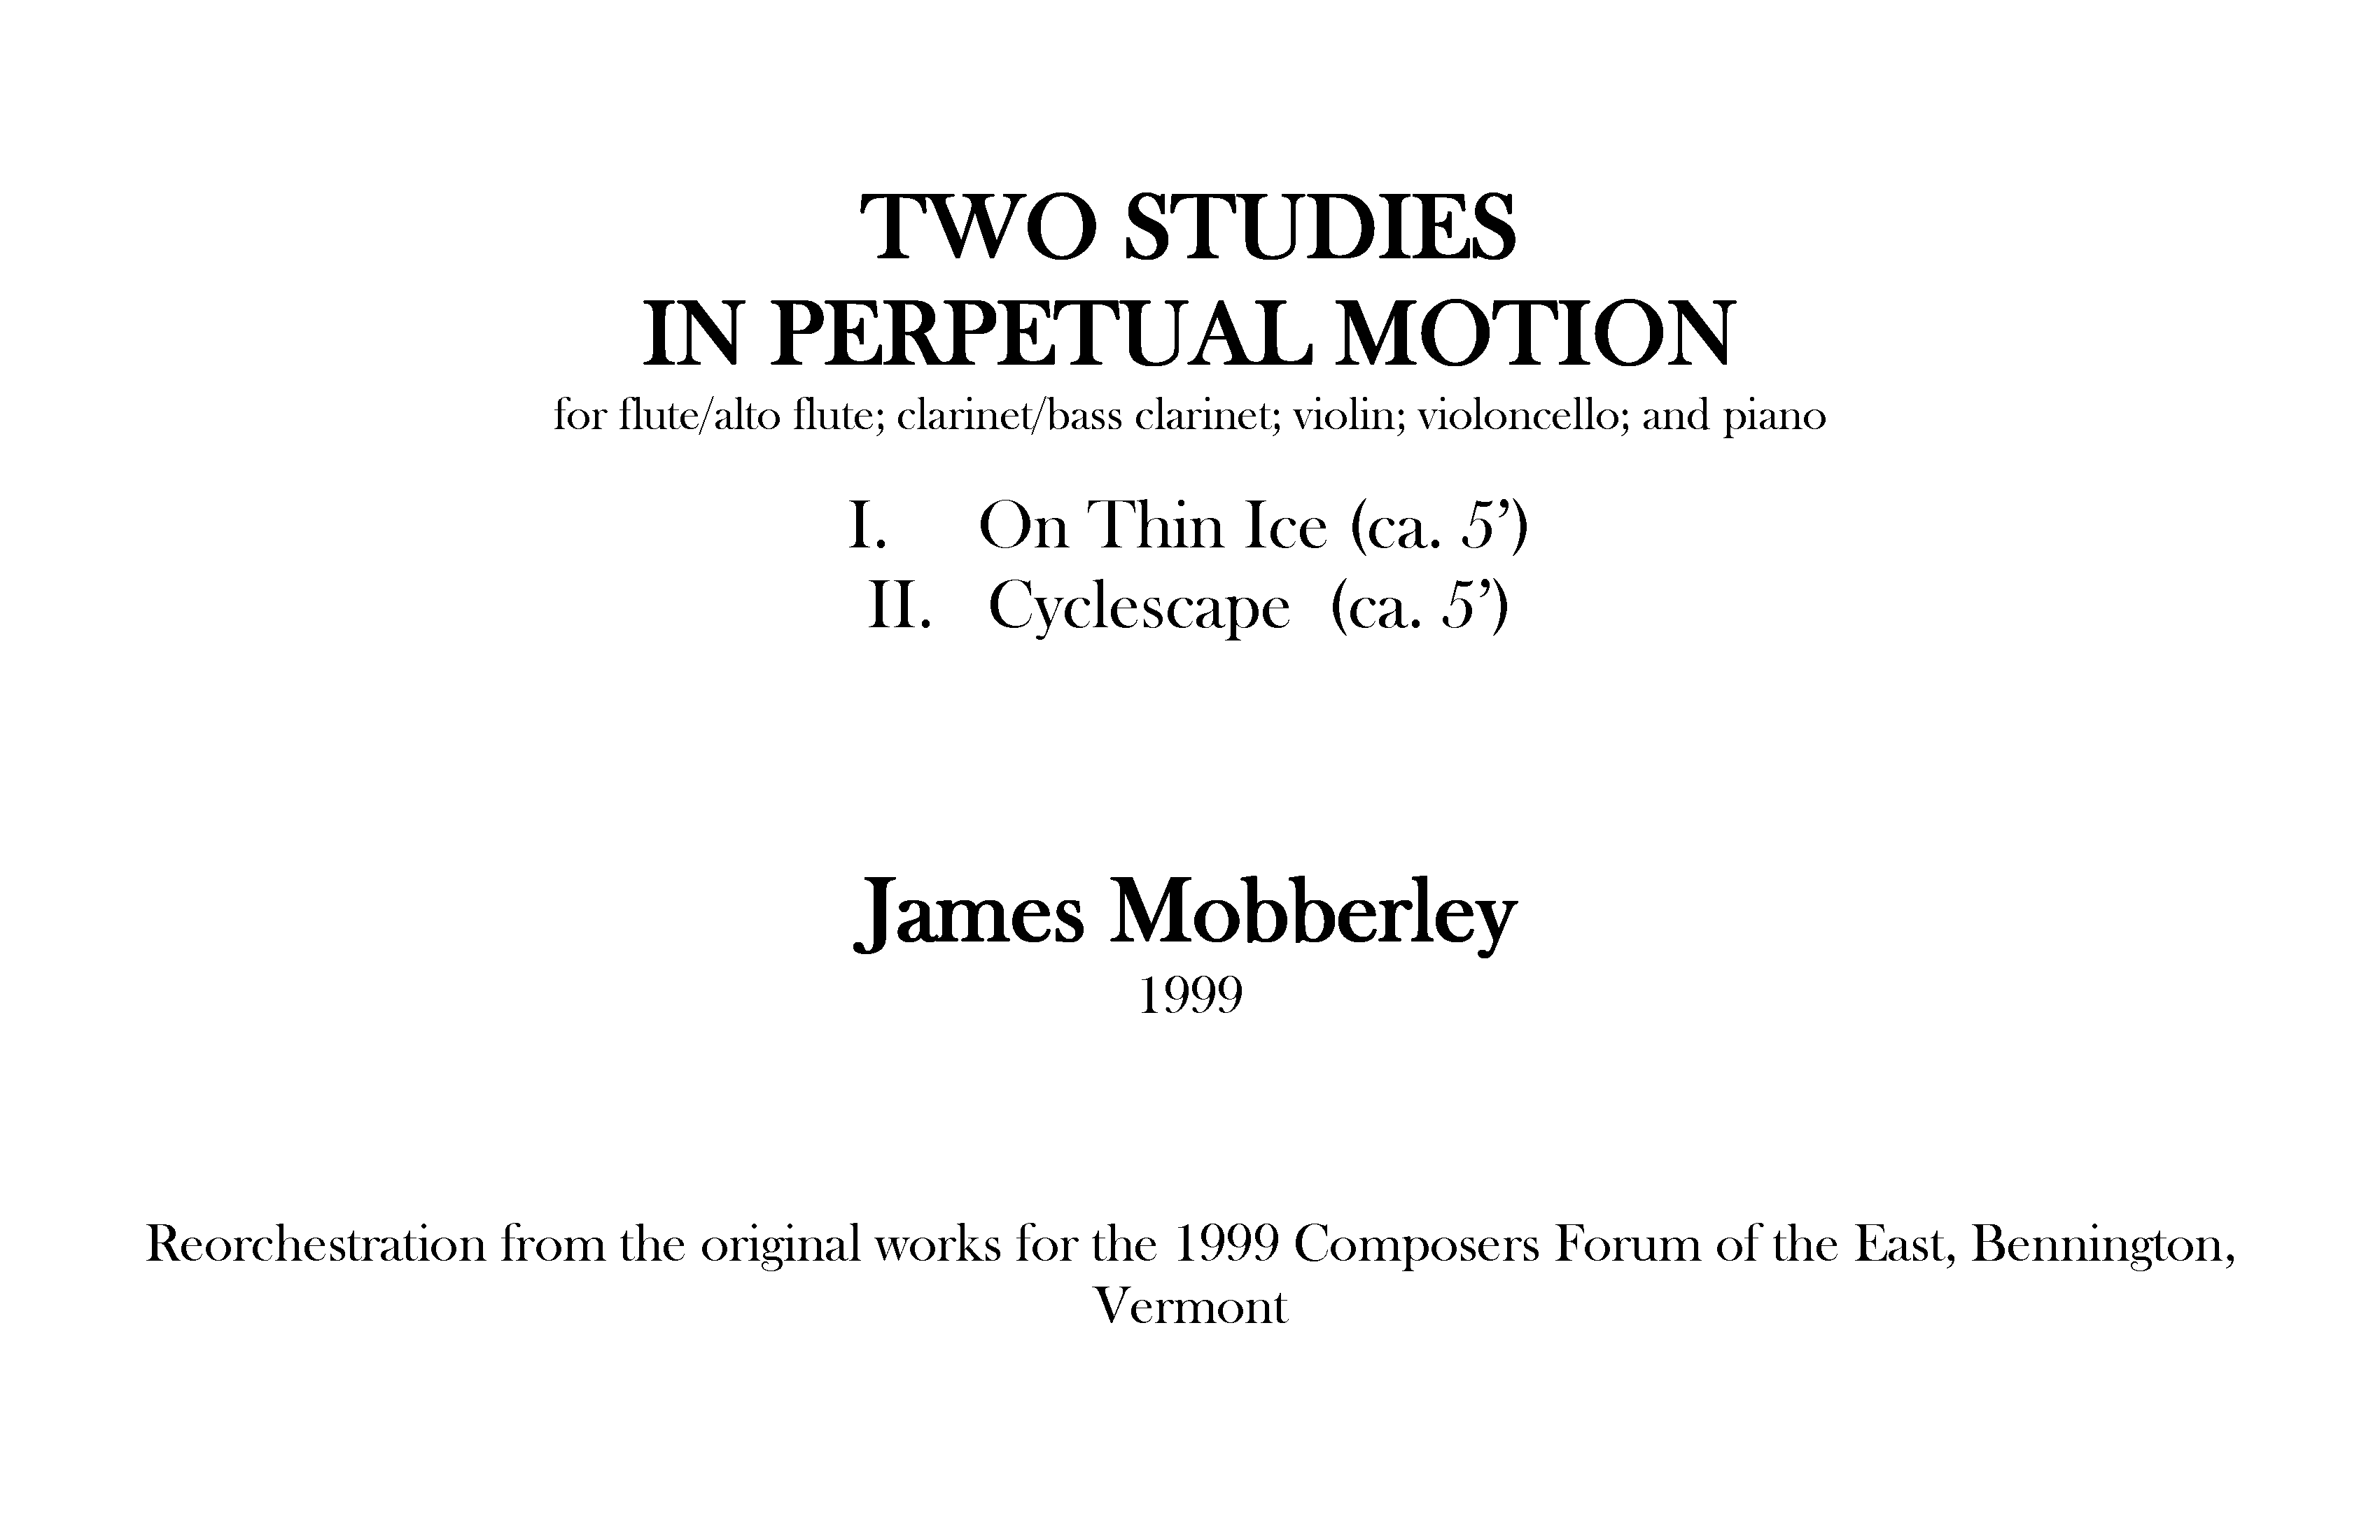 Two studies pages 1 6 james mobberley two studies website pagespage1 hexwebz Gallery